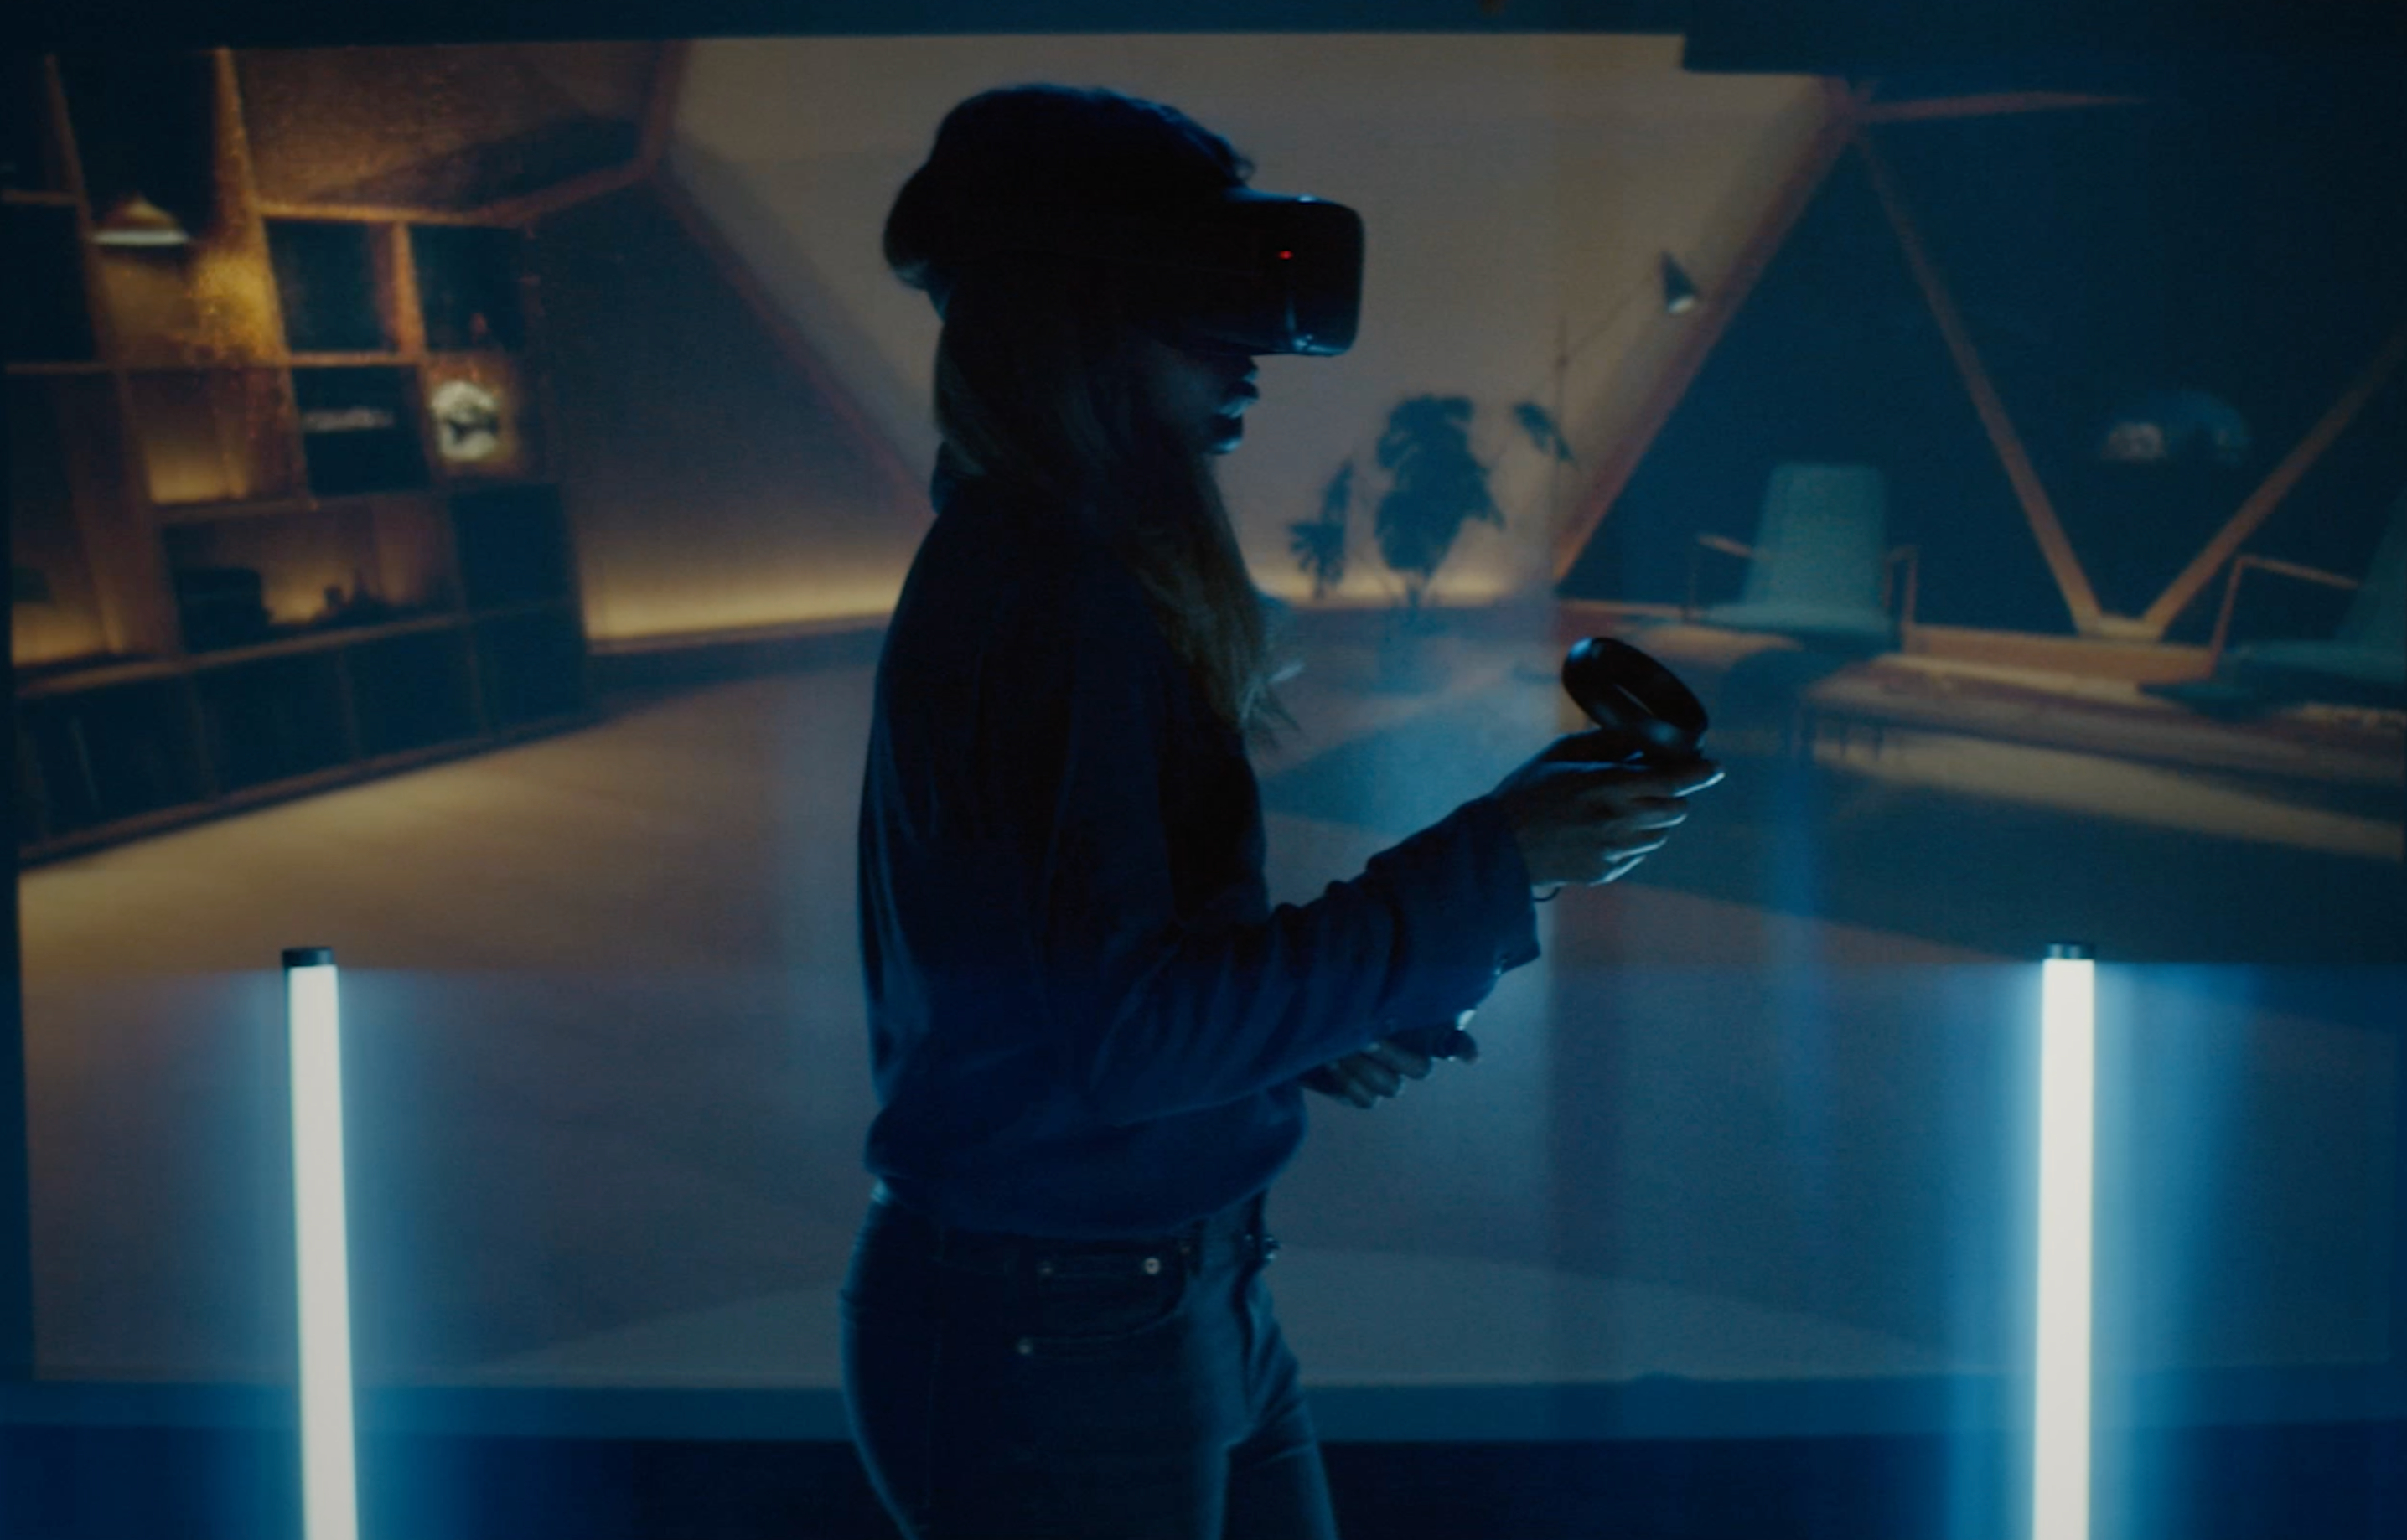 Female product design engineer with virtual reality headset (credits: © This is Engineering / Flickr Creative Commons Attribution-NonCommercial-NoDerivs 2.0 Generic (CC BY-NC-ND 2.0))